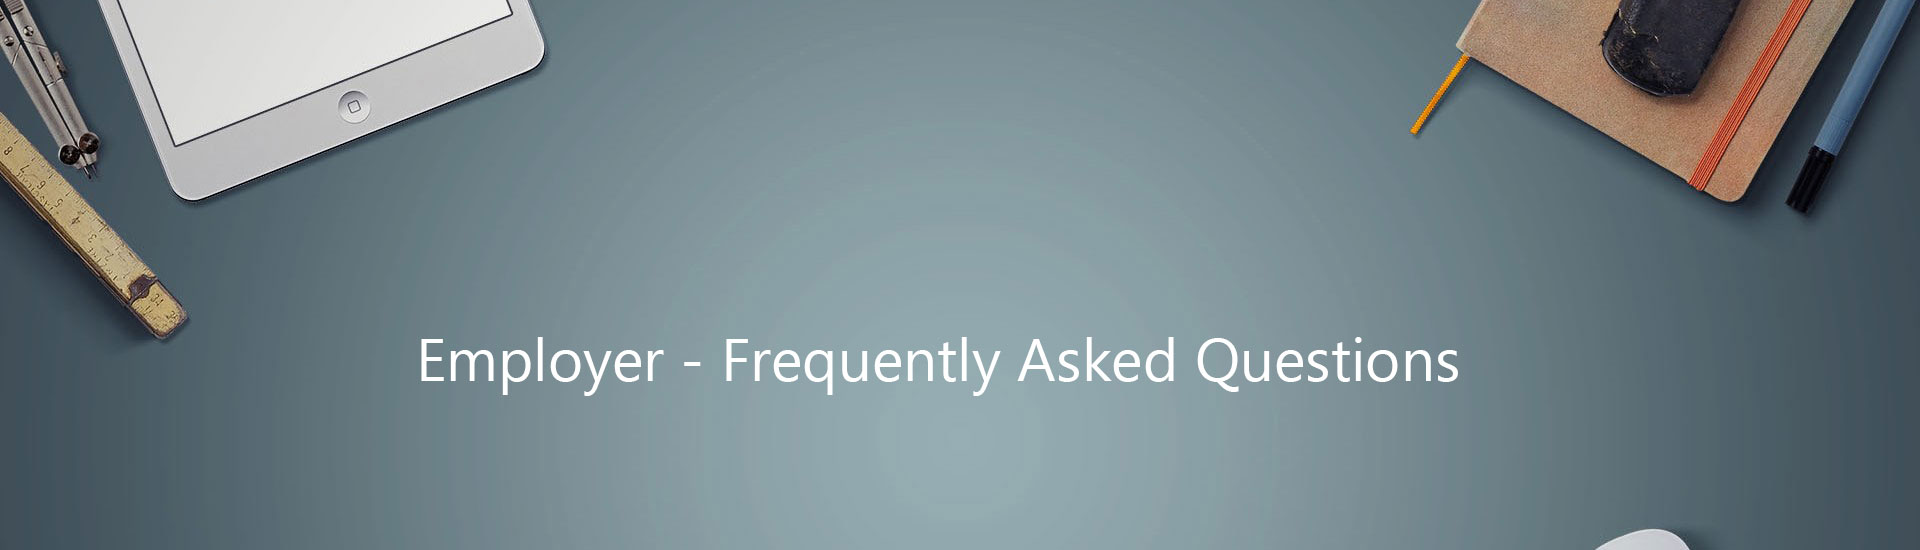 questions employers frequently ask recruitment firms jrg partners employer frequently asked questions